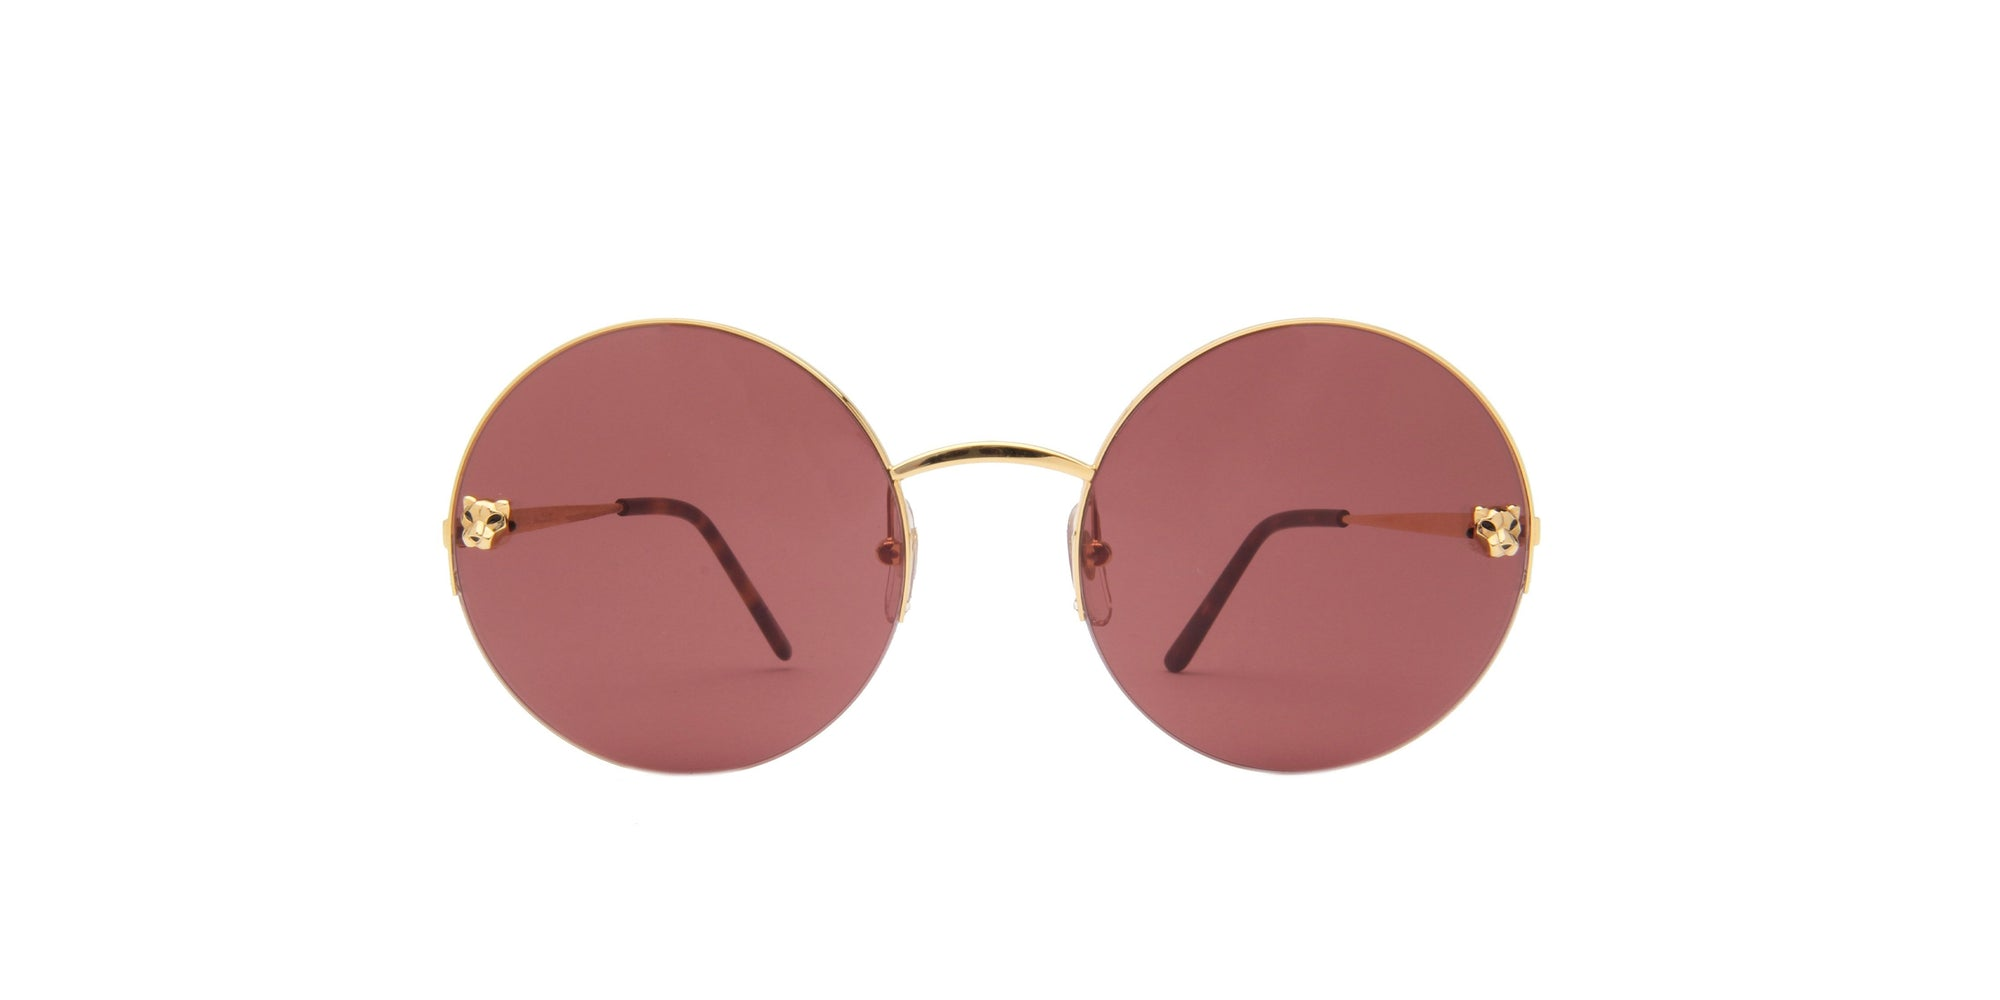 Cartier - CT0022S Gold/Burgundy Round Women Sunglasses - 58mm-Sunglasses-Designer Eyes